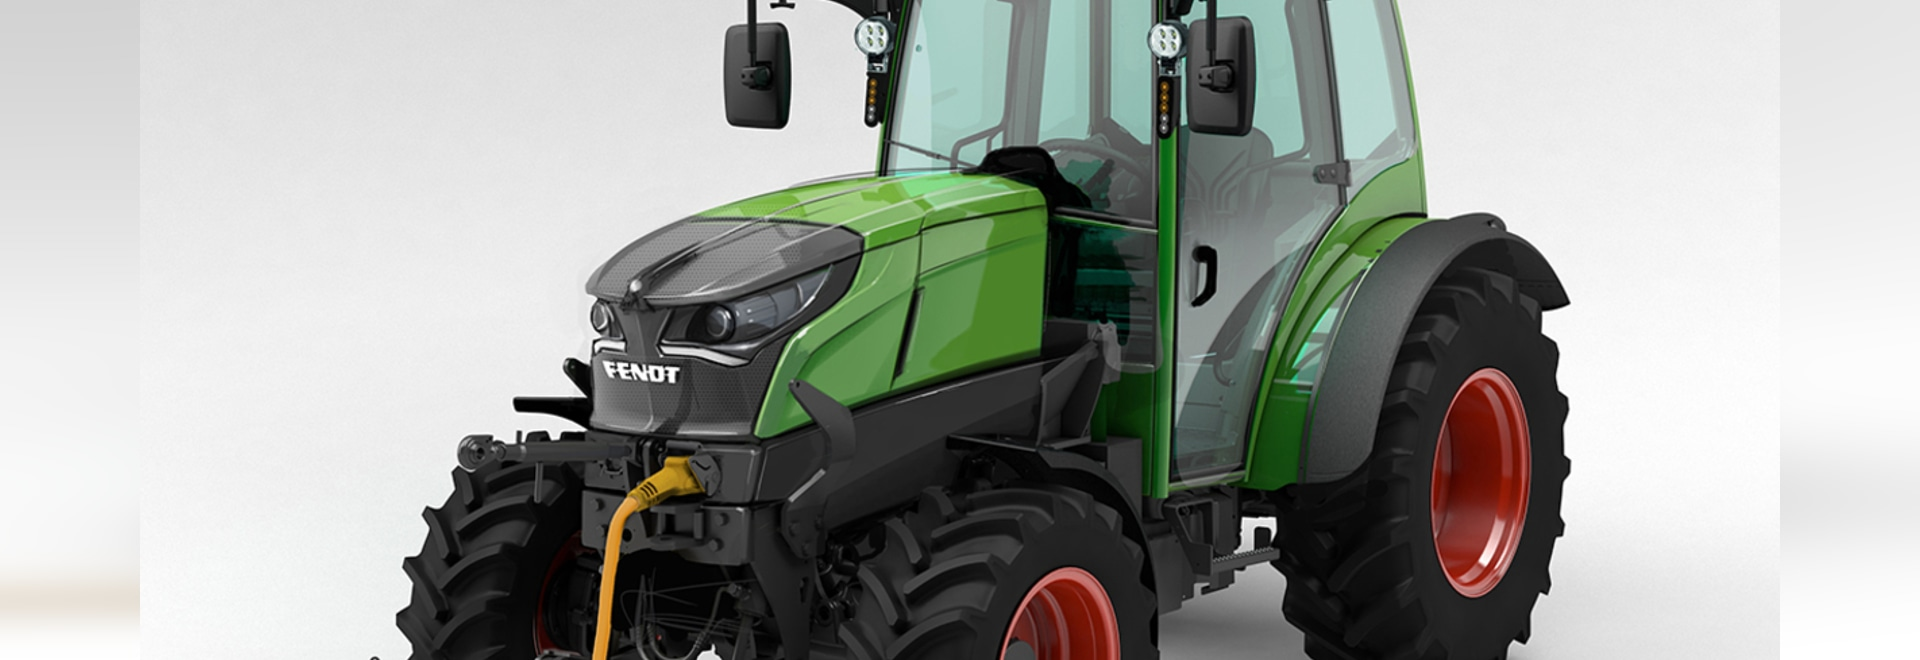 100% electric tractor from Fendt runs for '5 continuous hours'